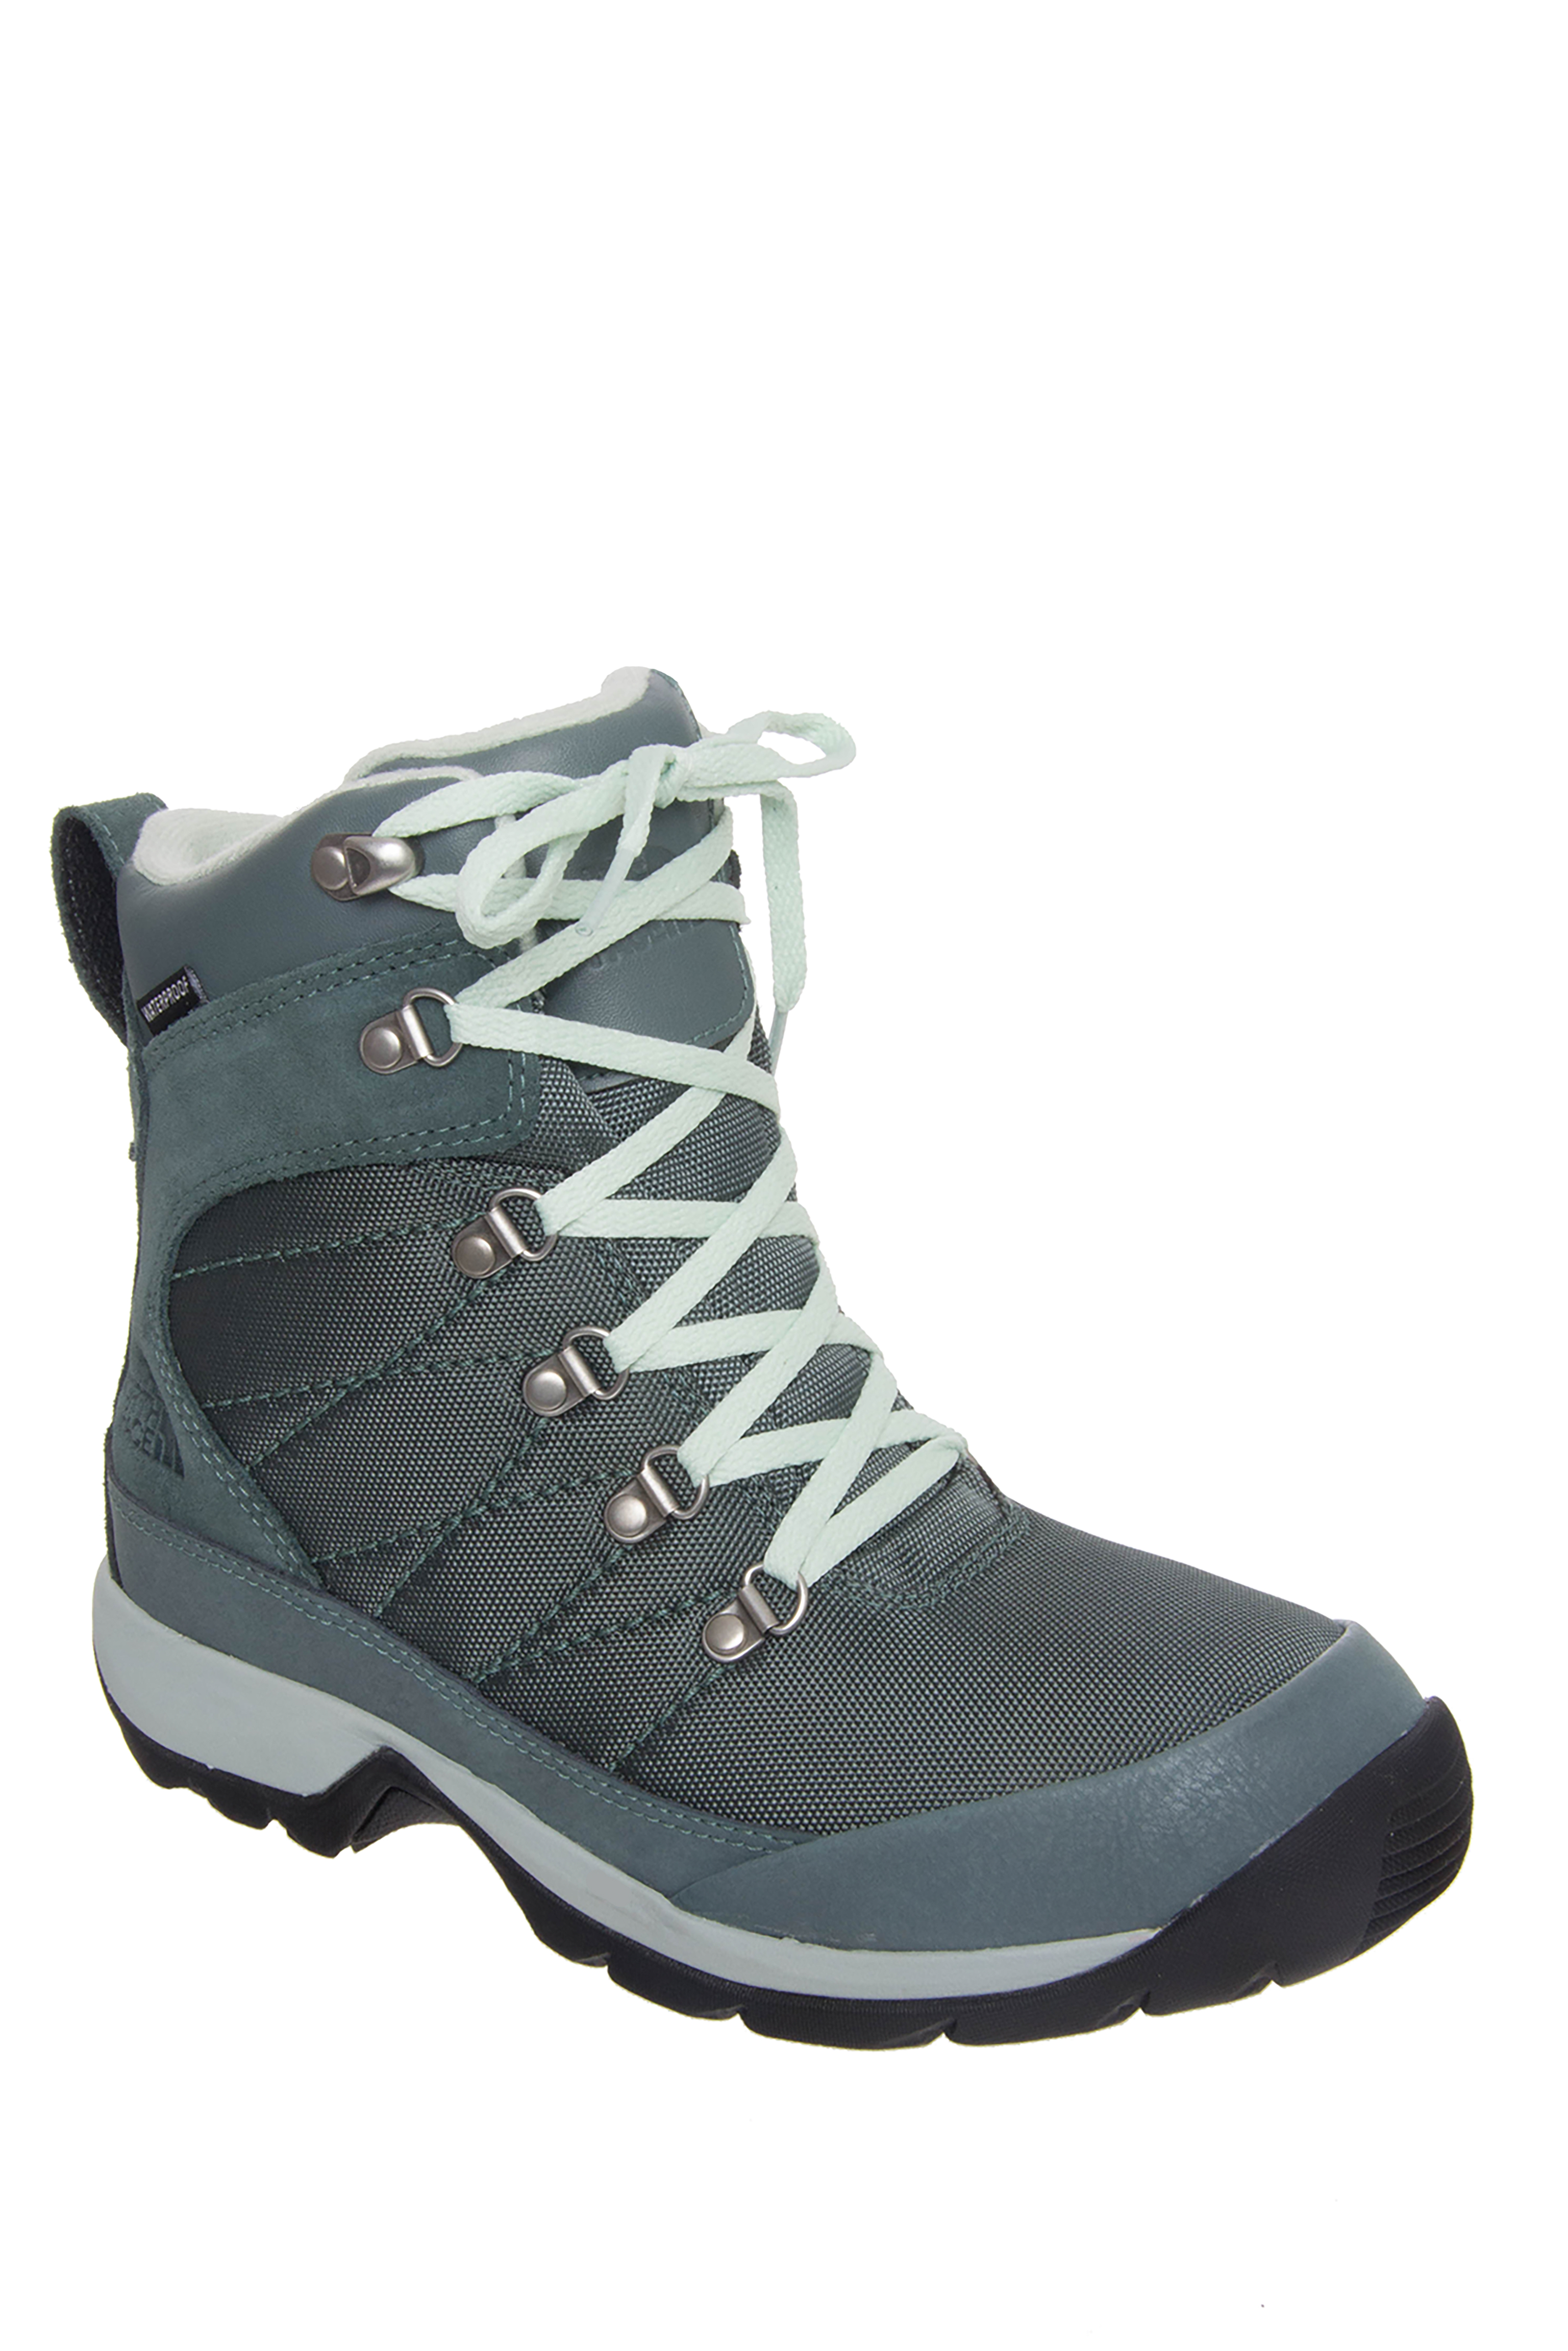 The North Face Chilkat Nylon Boots - Green